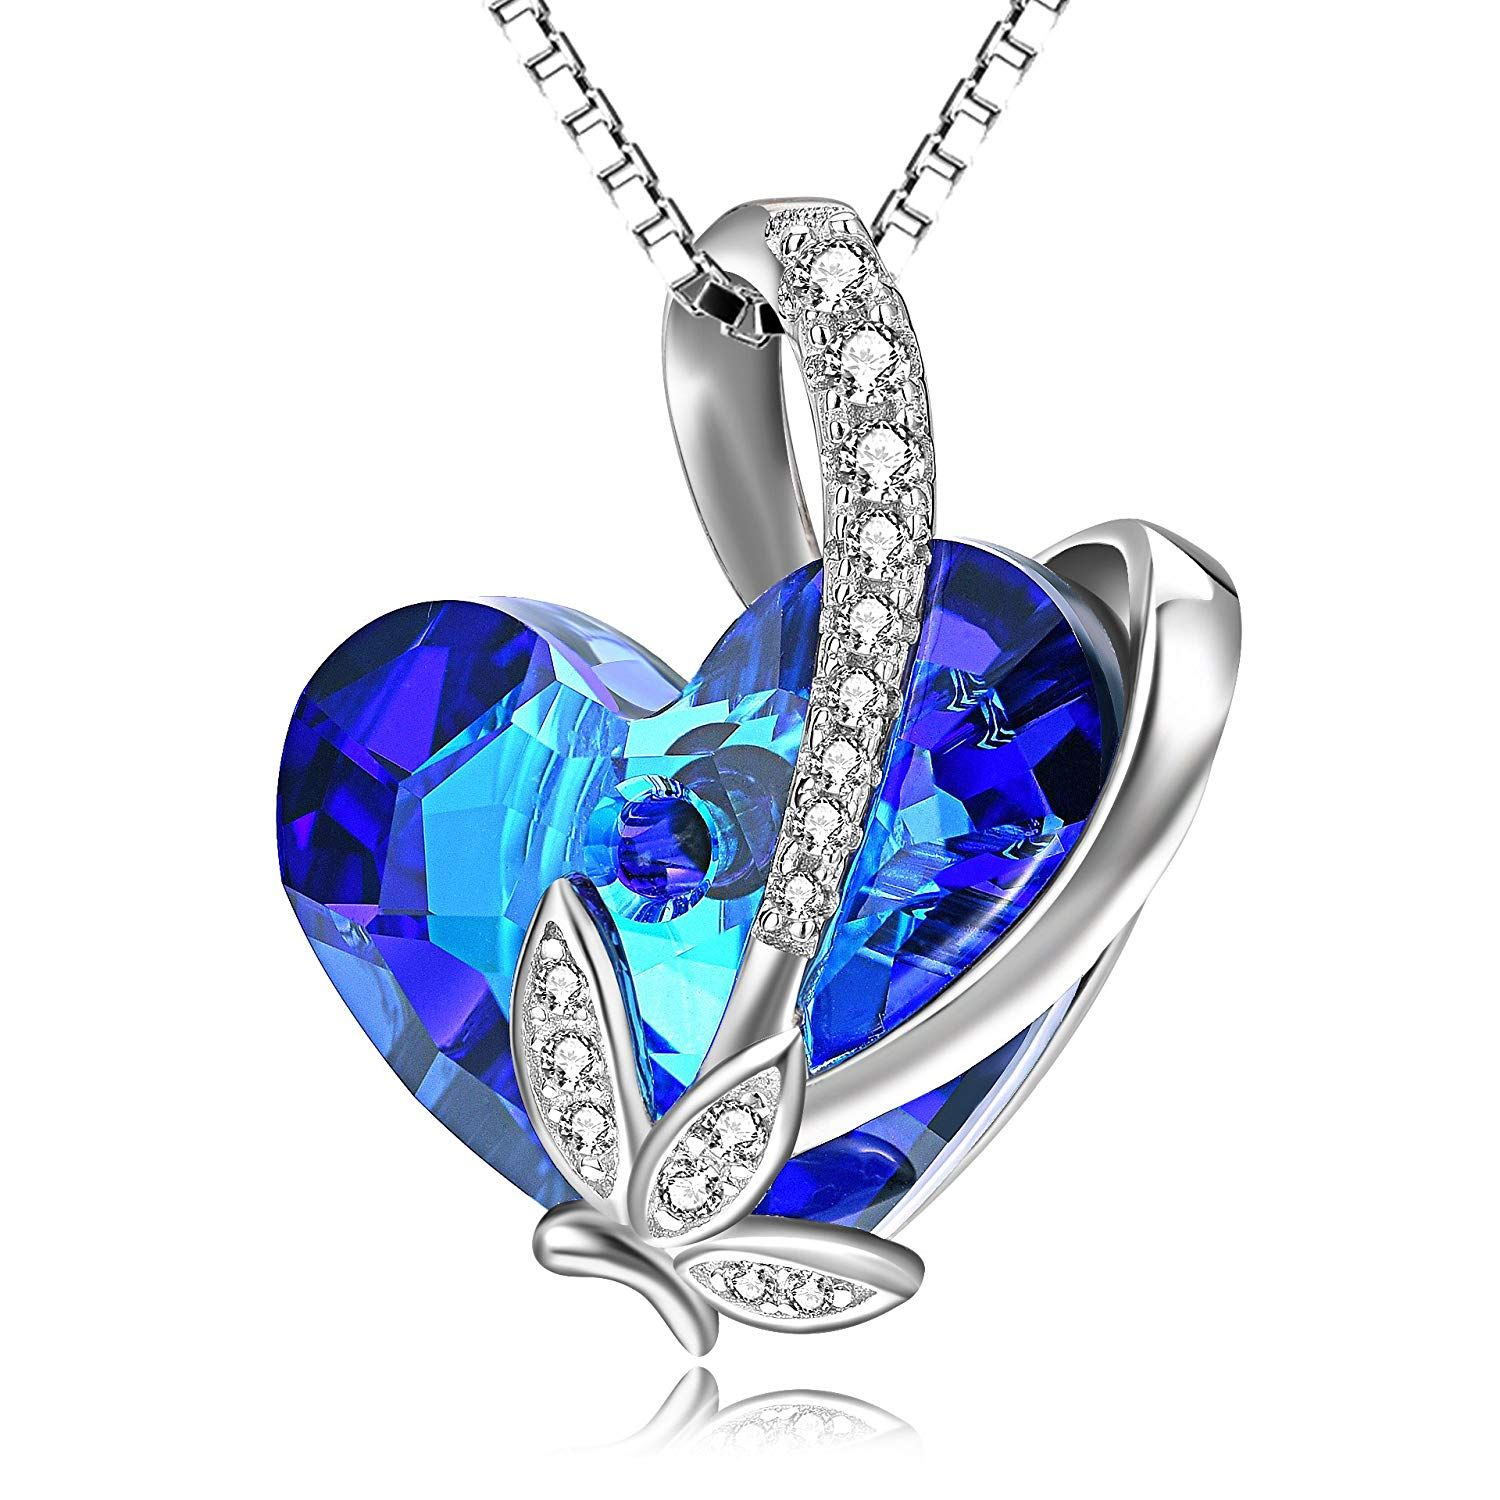 BUTTERFLY HEART NECKLACE BIRTHDAY GIFTS FOR WIFE GIRLFRIEND WOMEN MOM